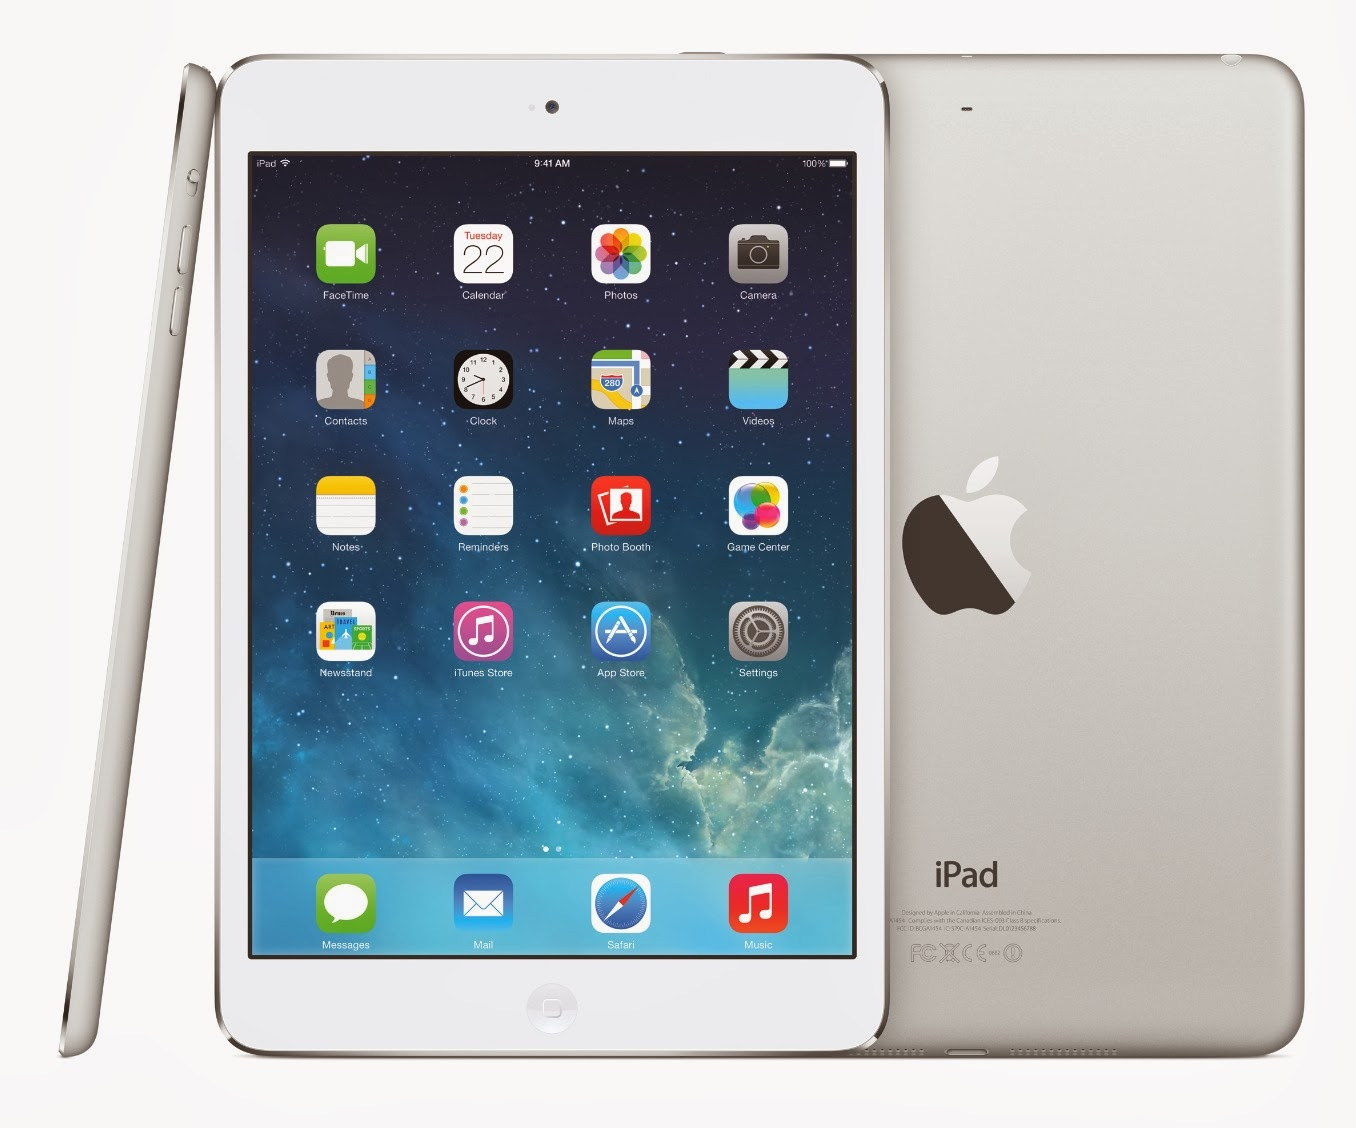 Analyst: Apple Will Release Updated iPad Air With A8 Processor In 2014 And iPad Mini In 2015